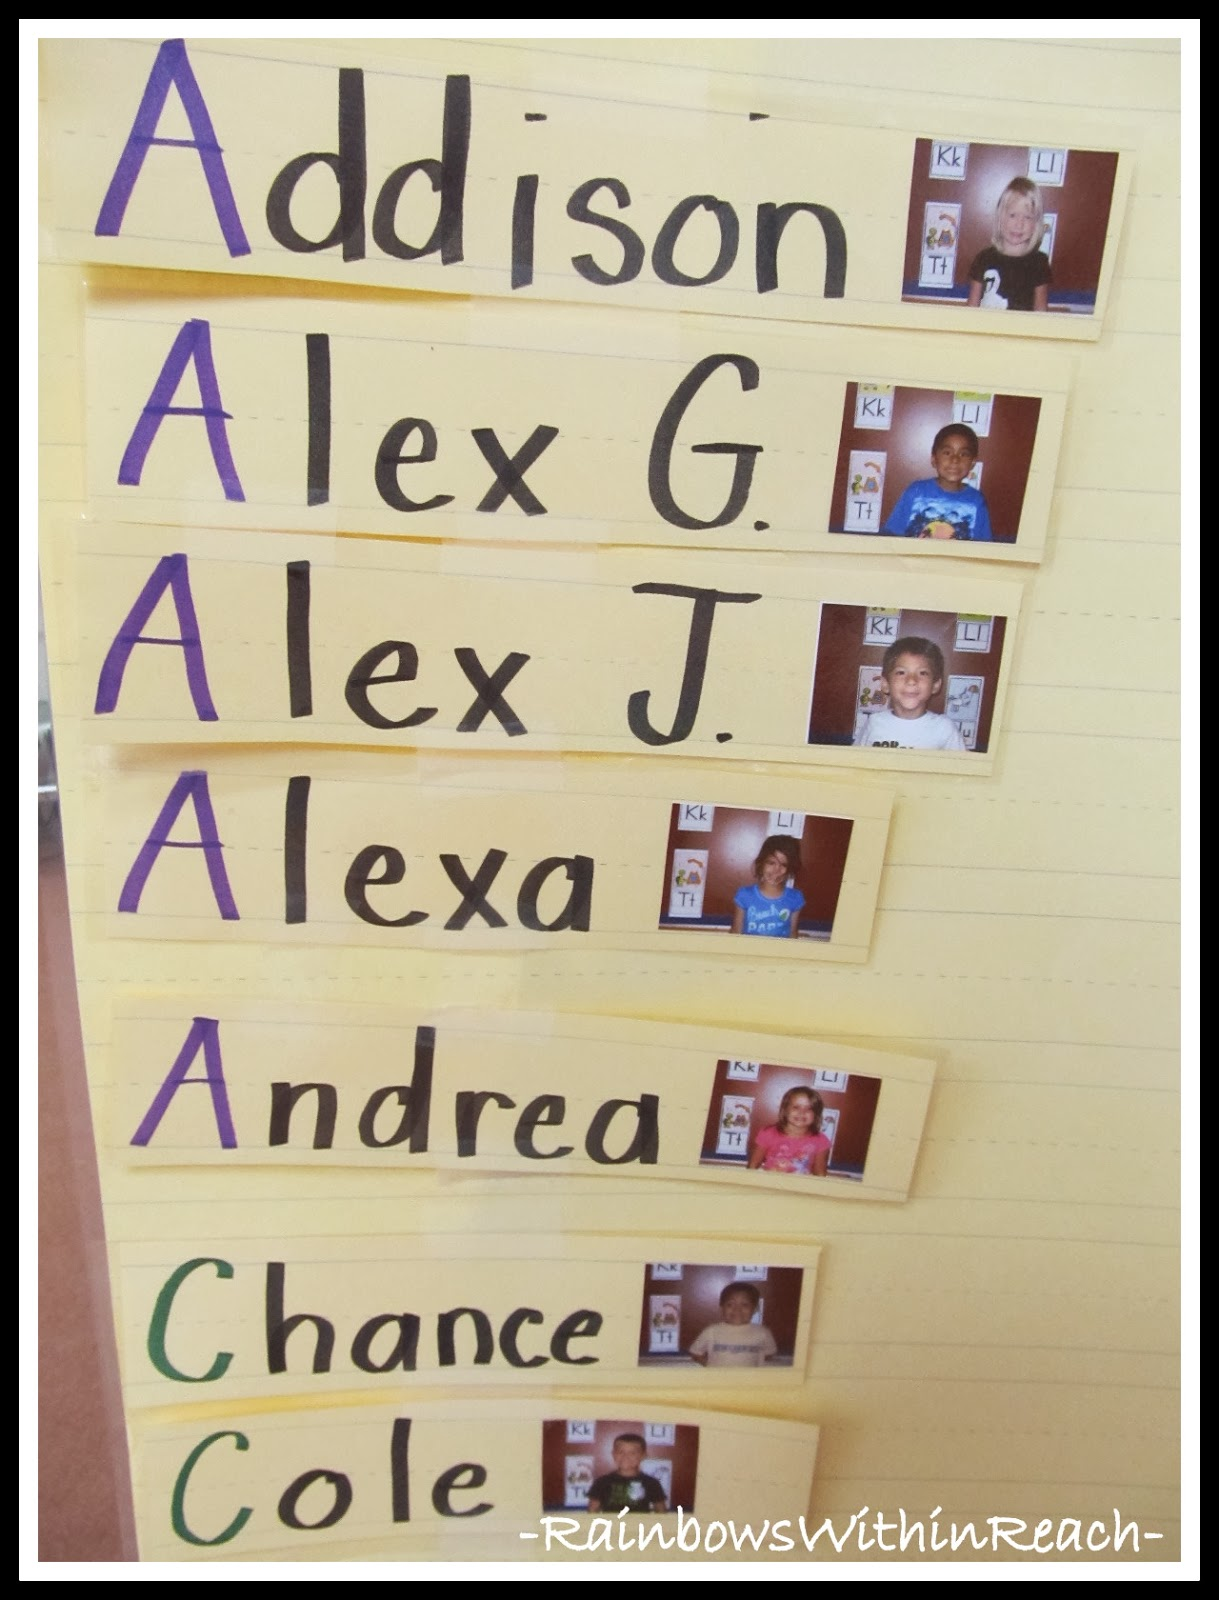 Alphabetizing Student Names with Photos